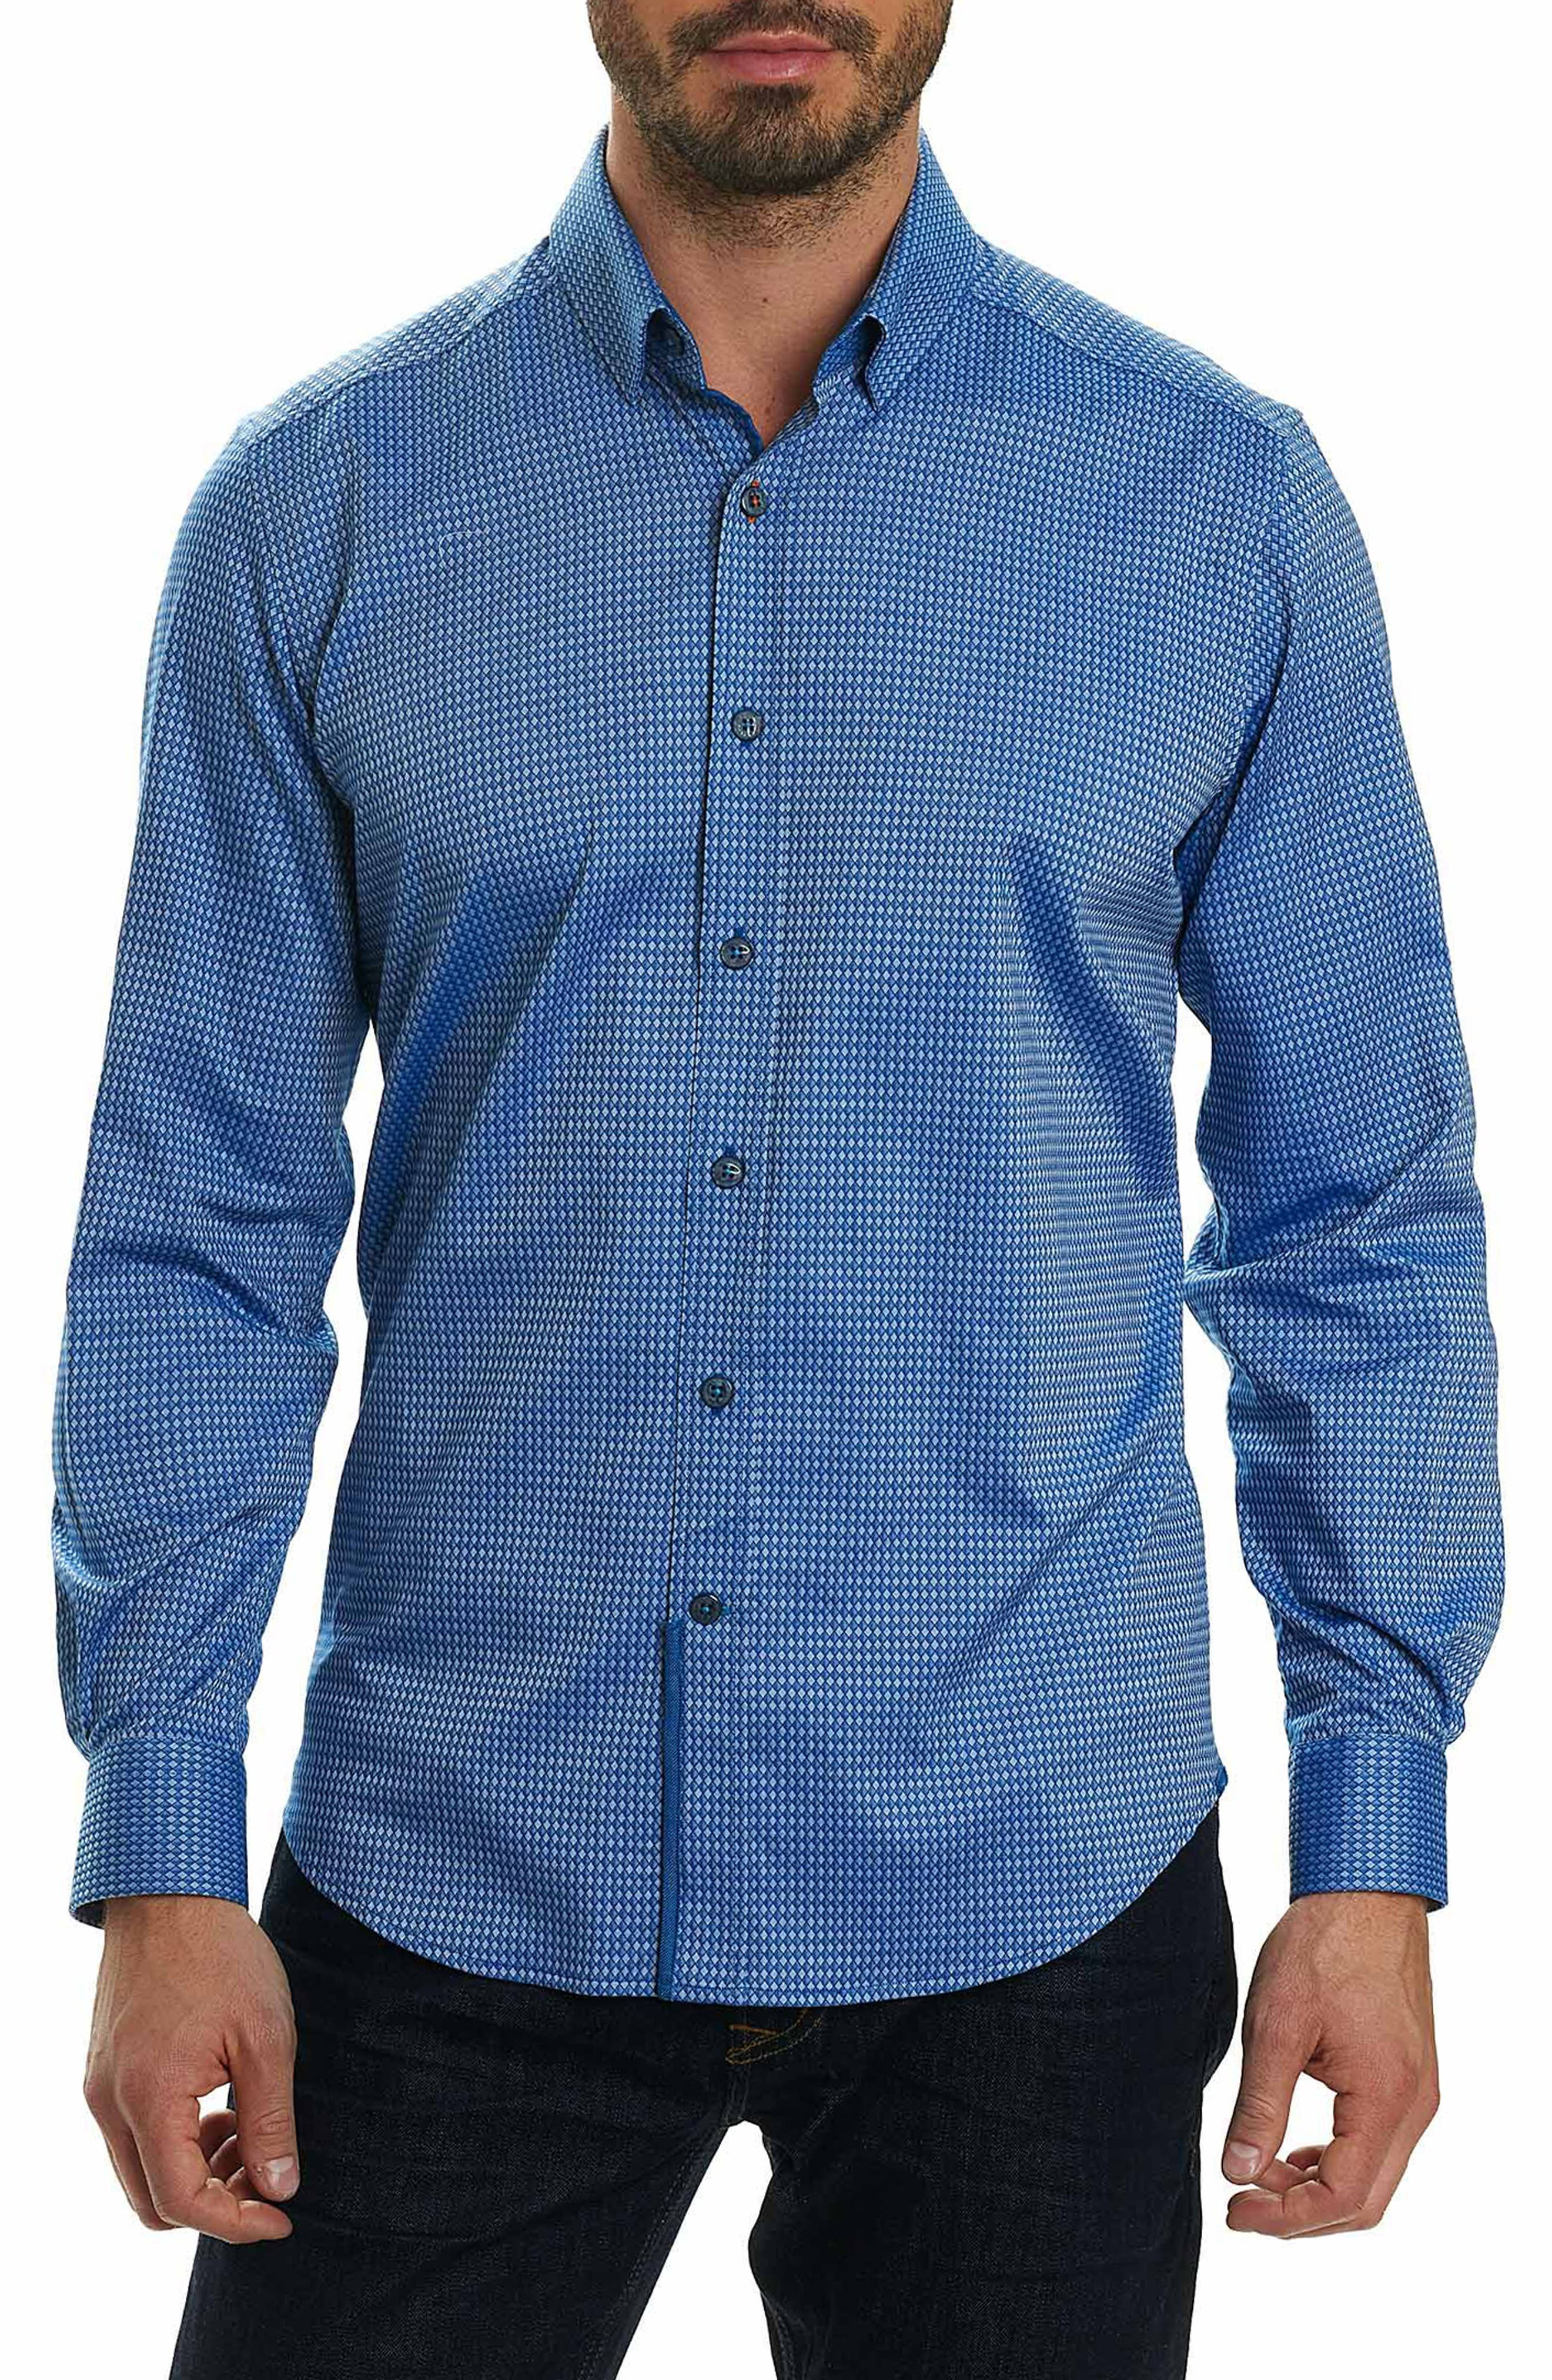 Matthew Tailored Fit Print Sport Shirt,                             Main thumbnail 1, color,